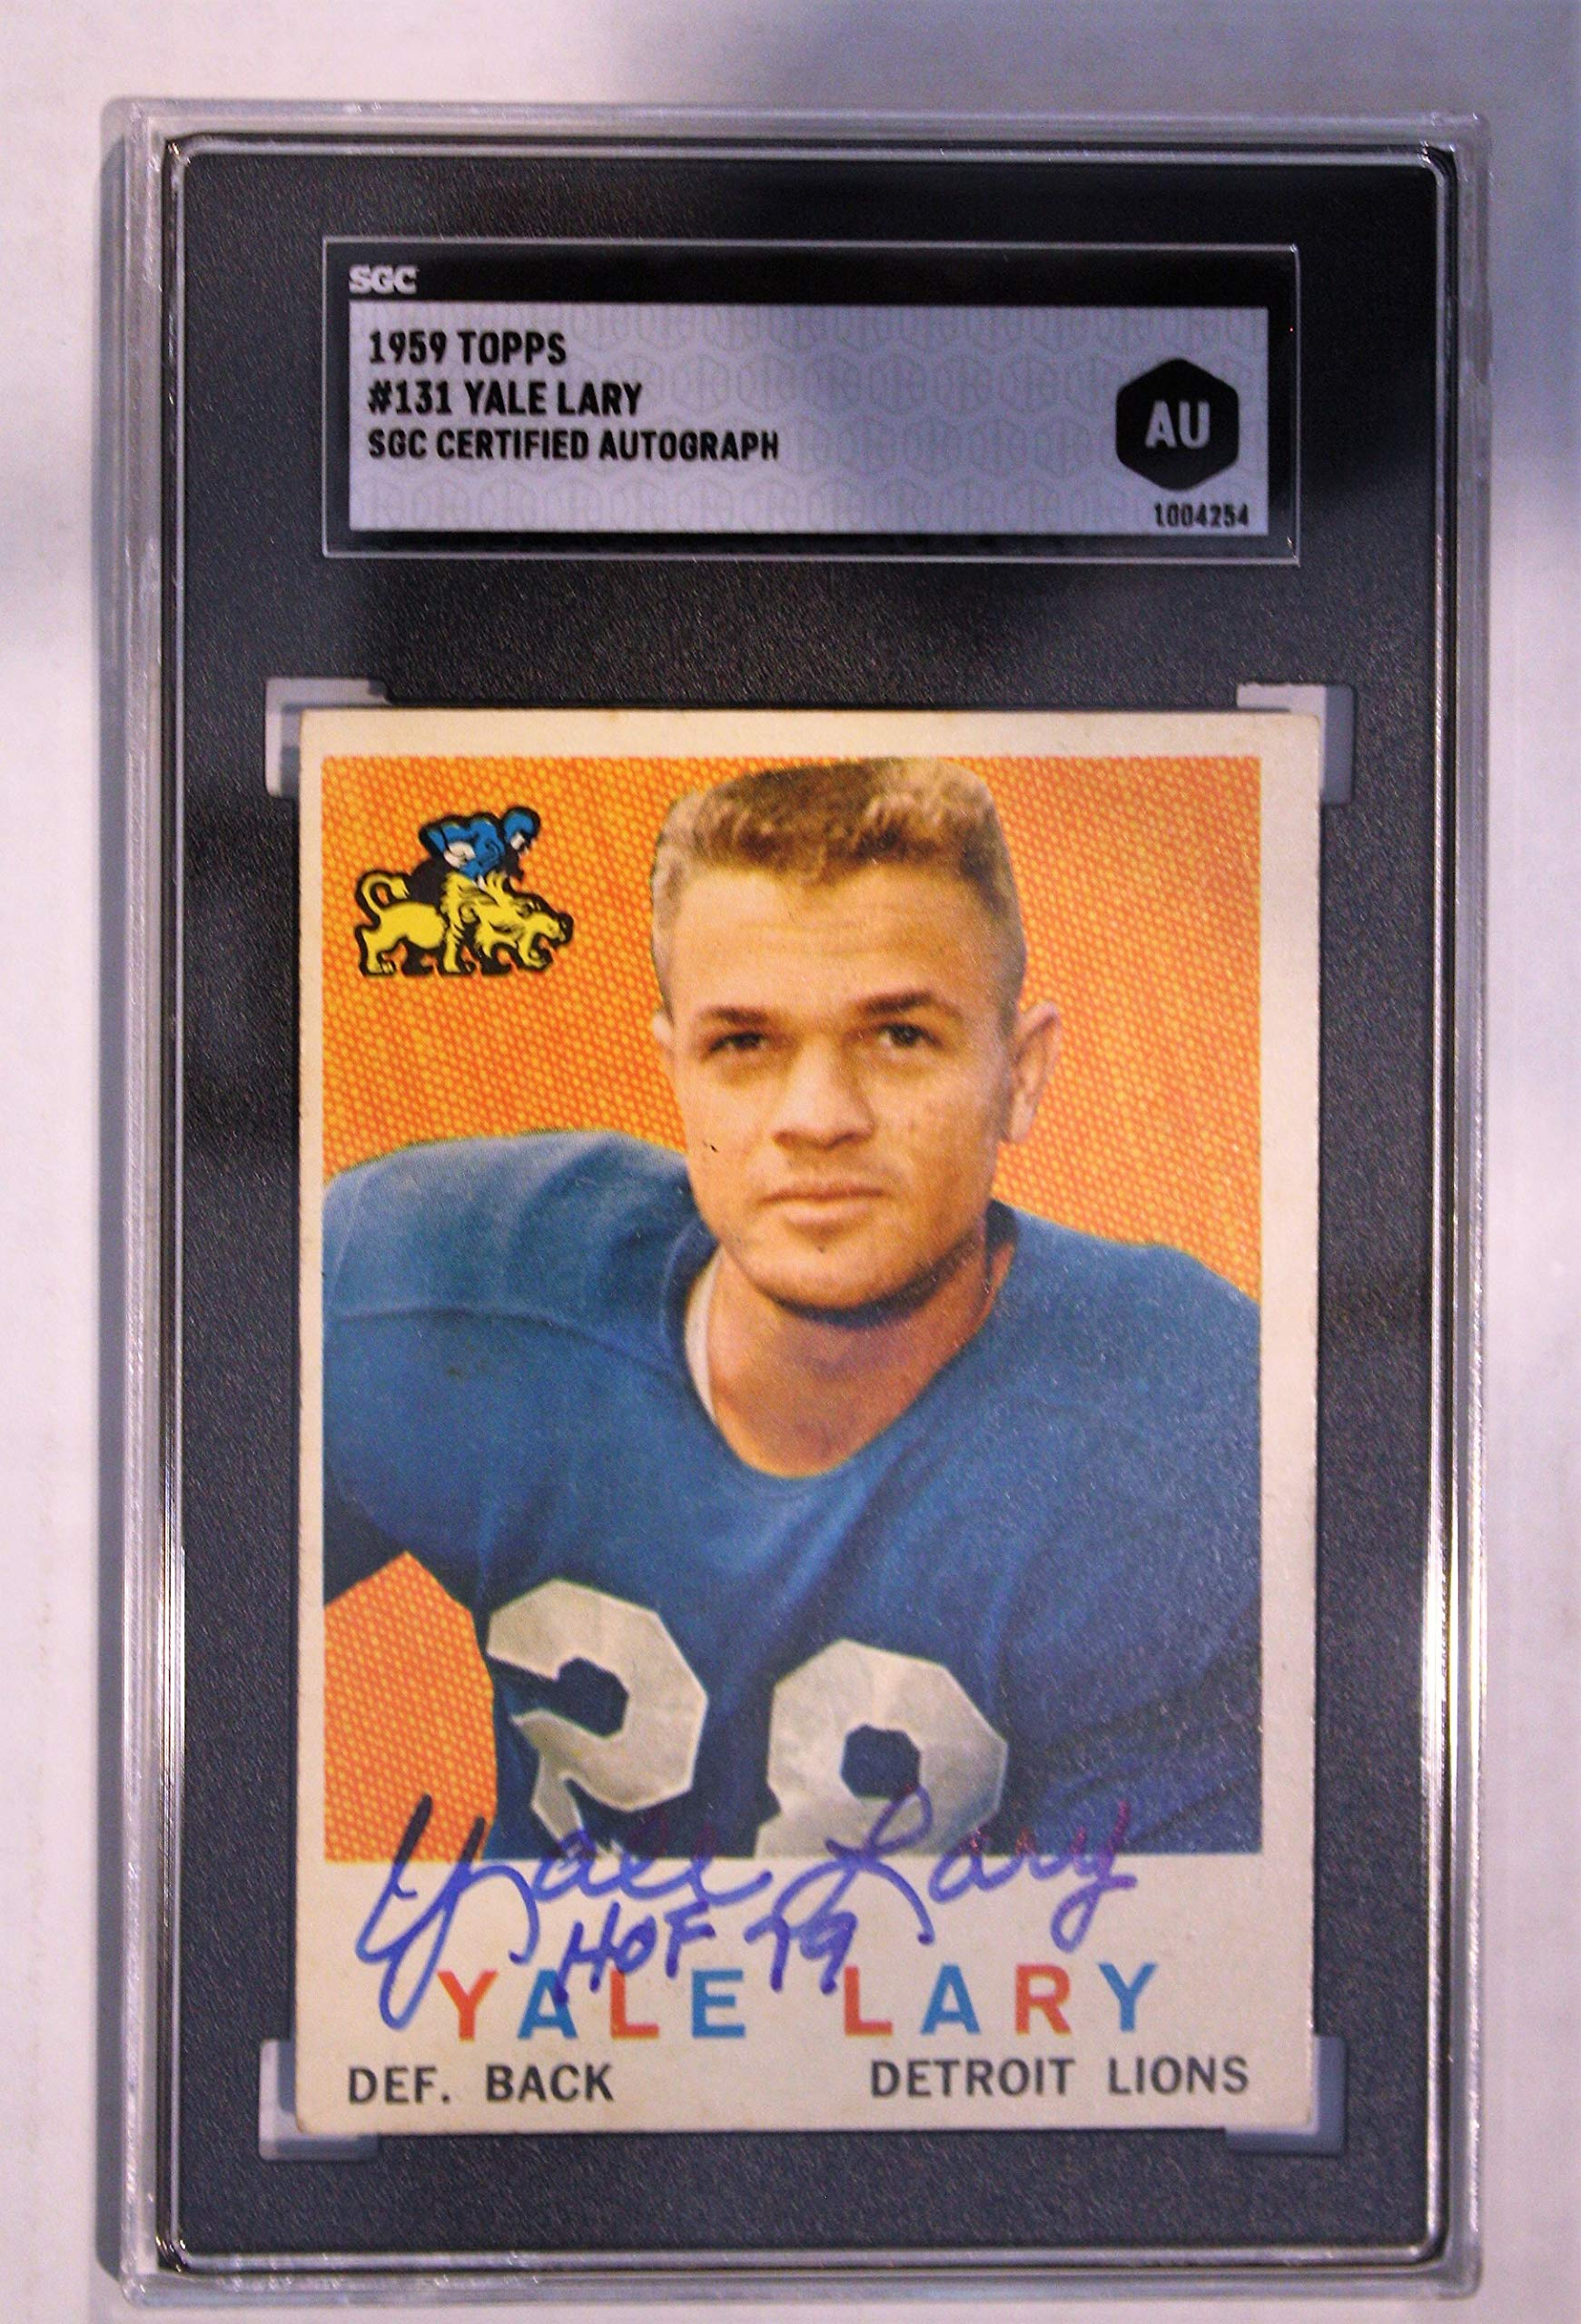 Autographed Yale Lary Detroit Lions 1959 Topps Card, 131 SGC Slabbed